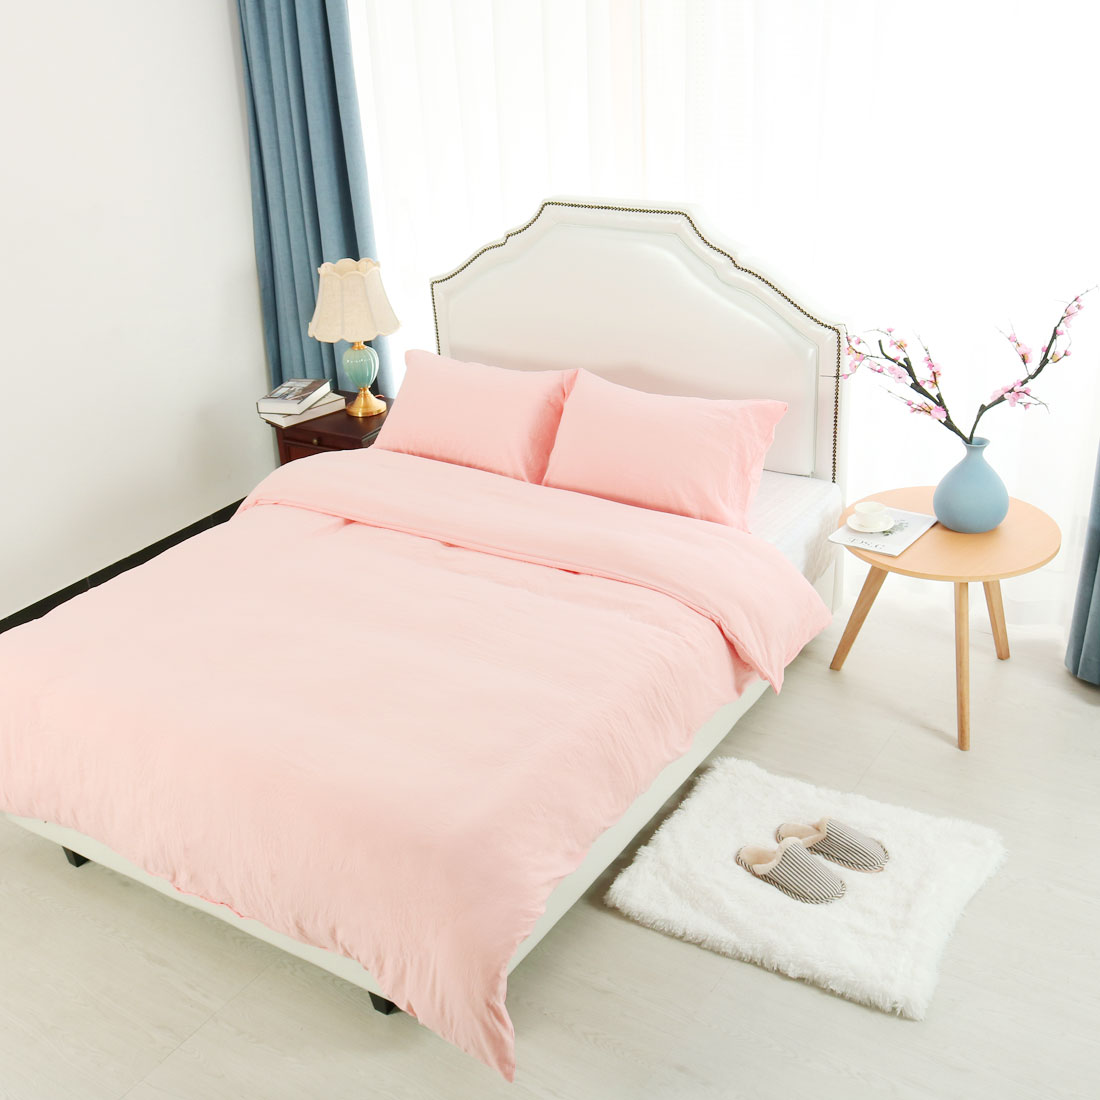 Twin Duvet Cover Set (1 Duvet Cover + 1 Pillowcase) Washed Cotton Coral Pink